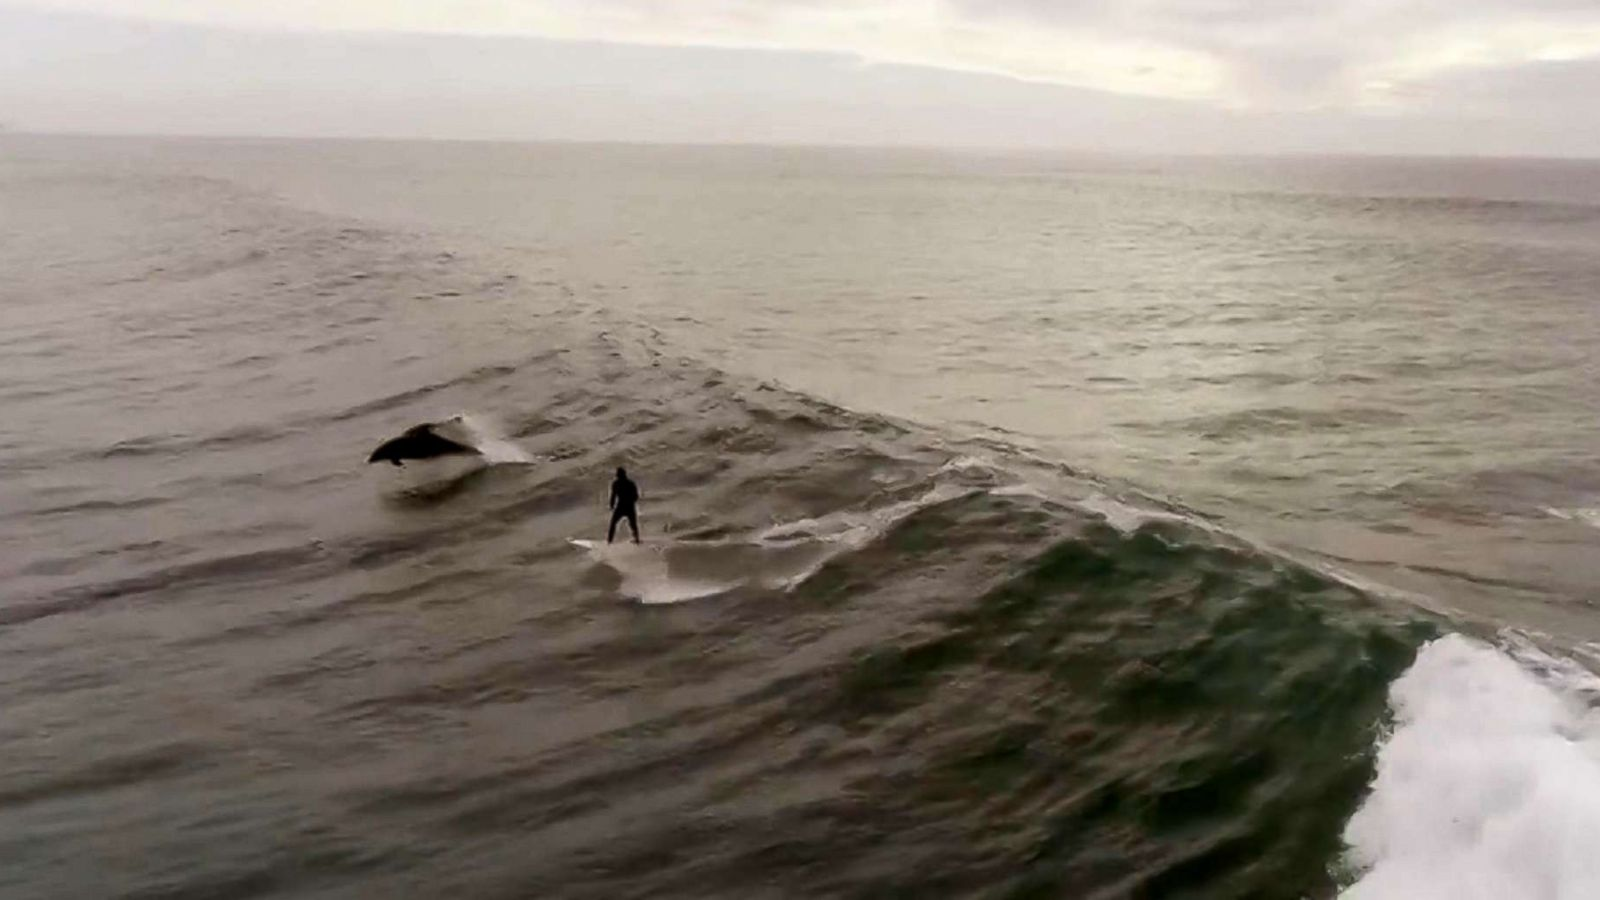 abcnews.go.com - Enjoli Francis - Drone captures man surfing with dolphins